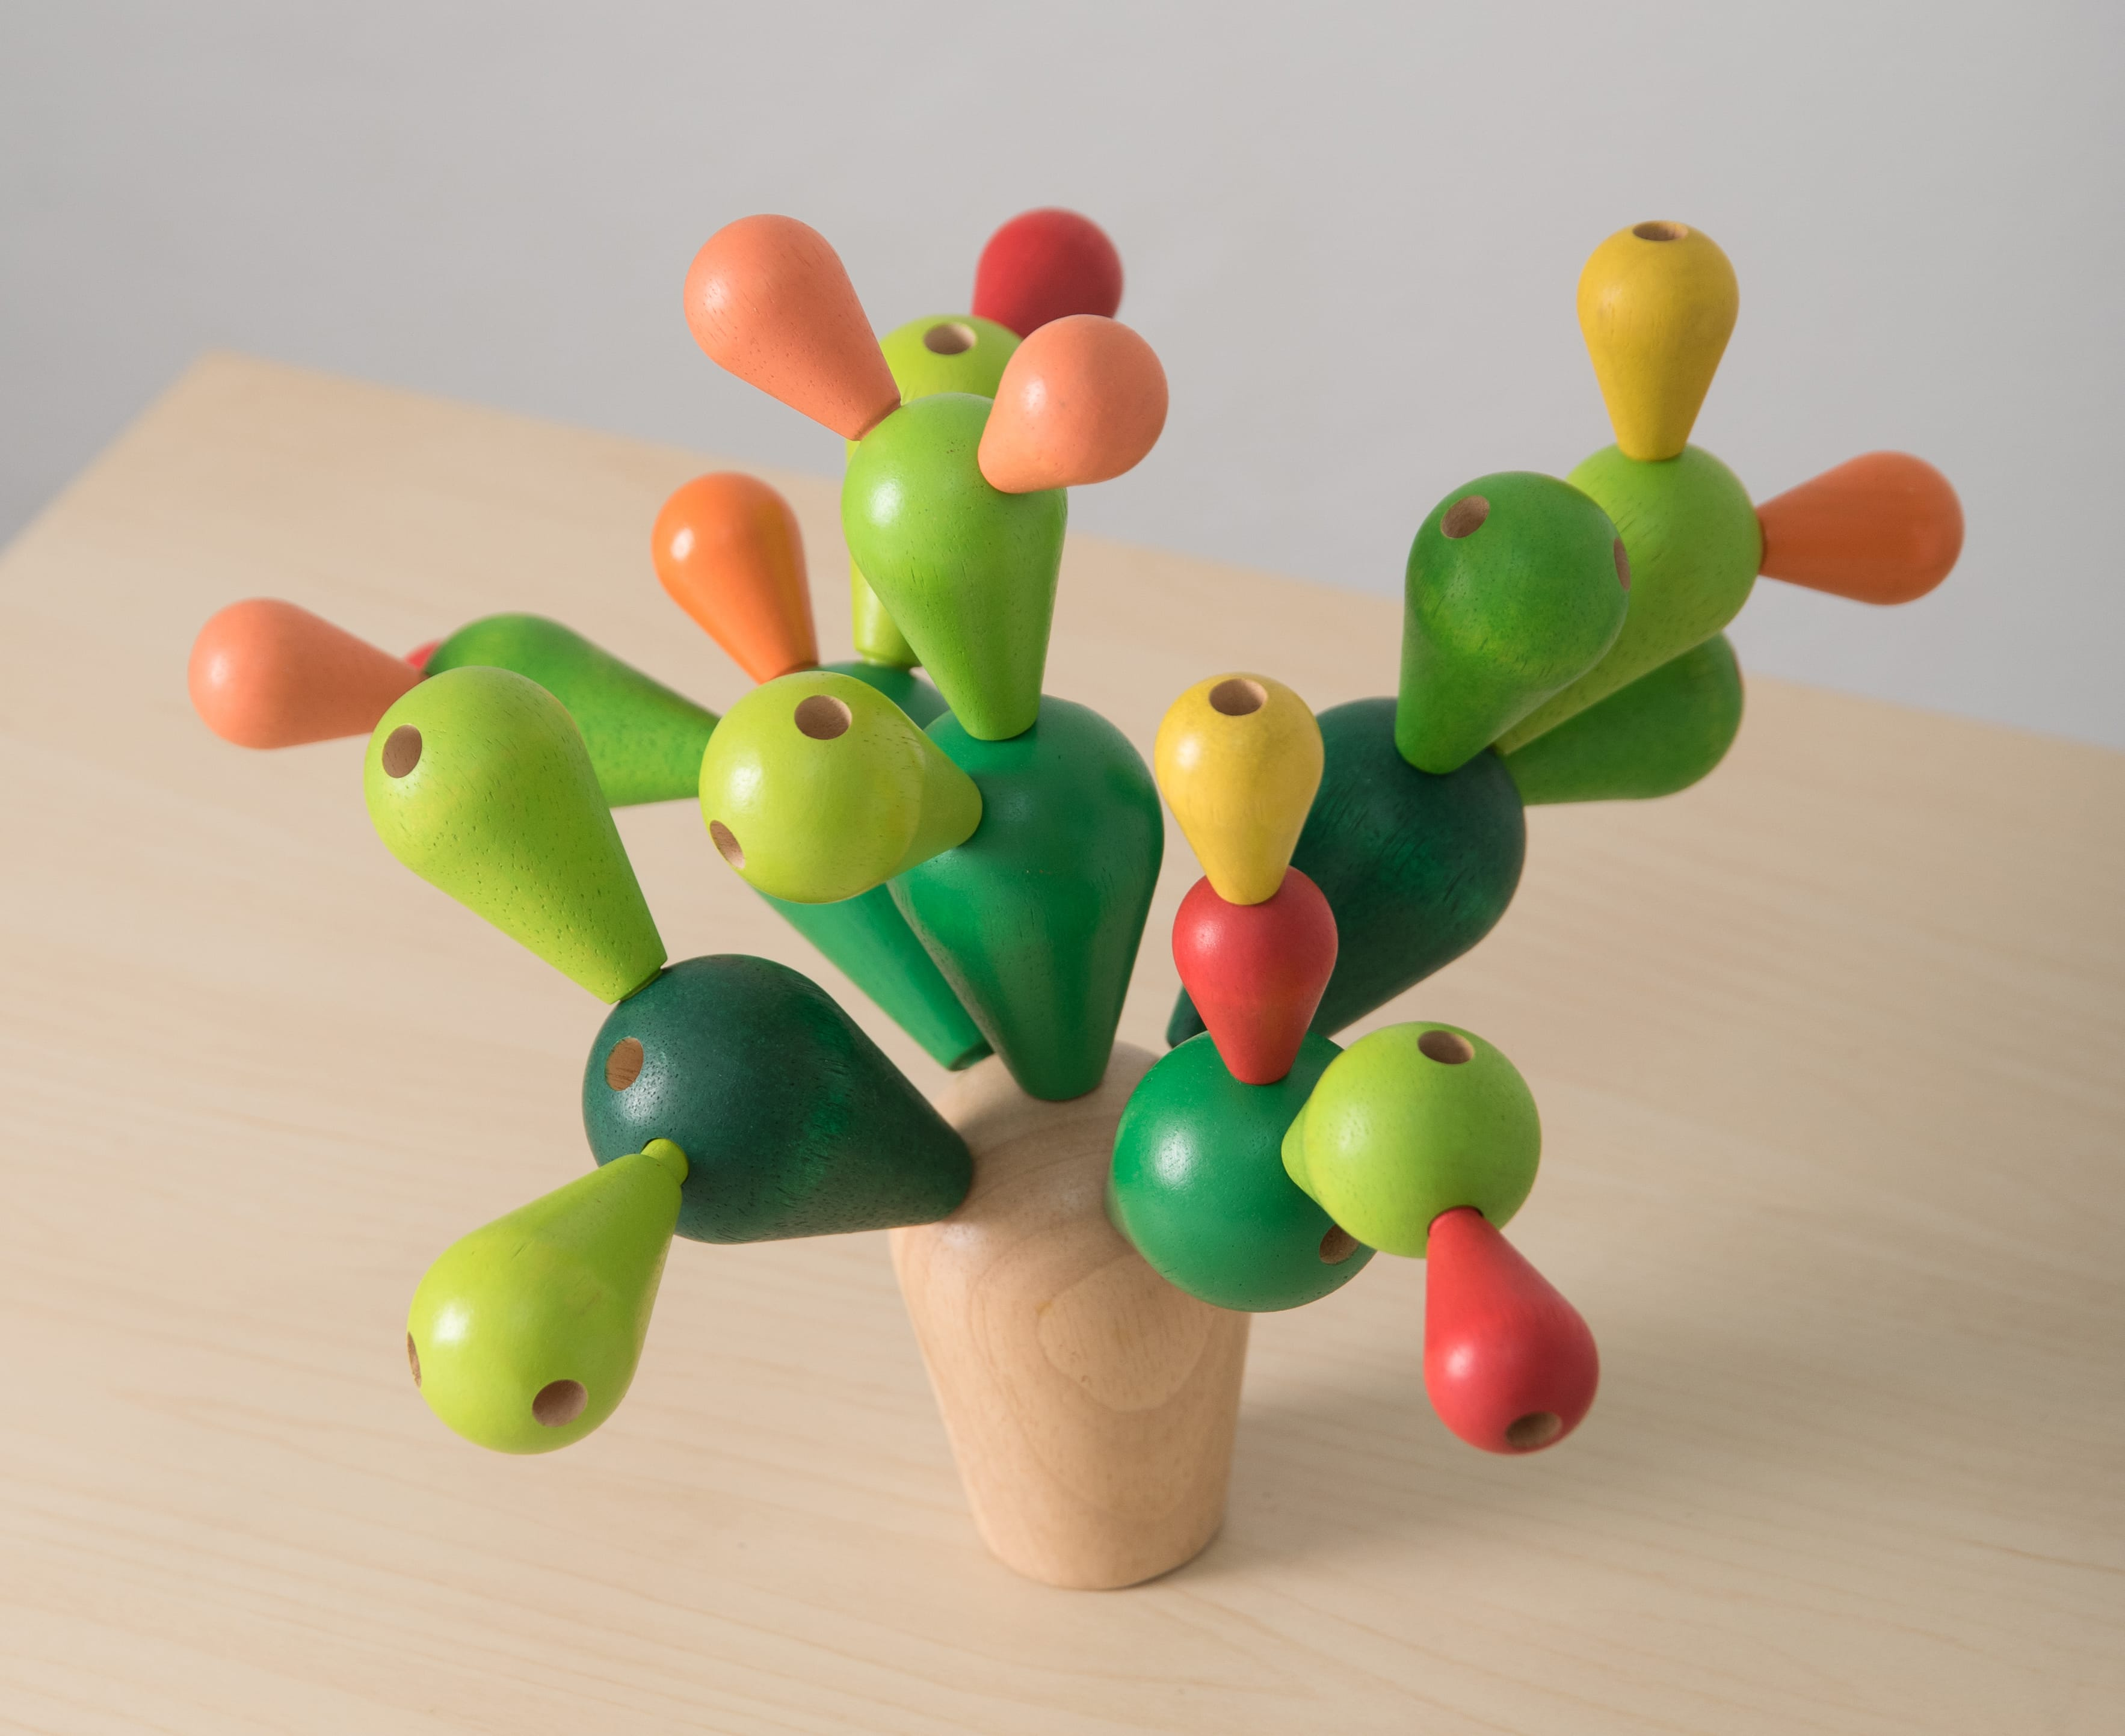 4101_PlanToys_BALANCING_CACTUS_Game_and_Puzzles_Concentration_Logical_Coordination_Problem_Solving_Language_and_Communications_Mathematical_3yrs_Wooden_toys_Education_toys_Safety_Toys_Non-toxic_3.jpg